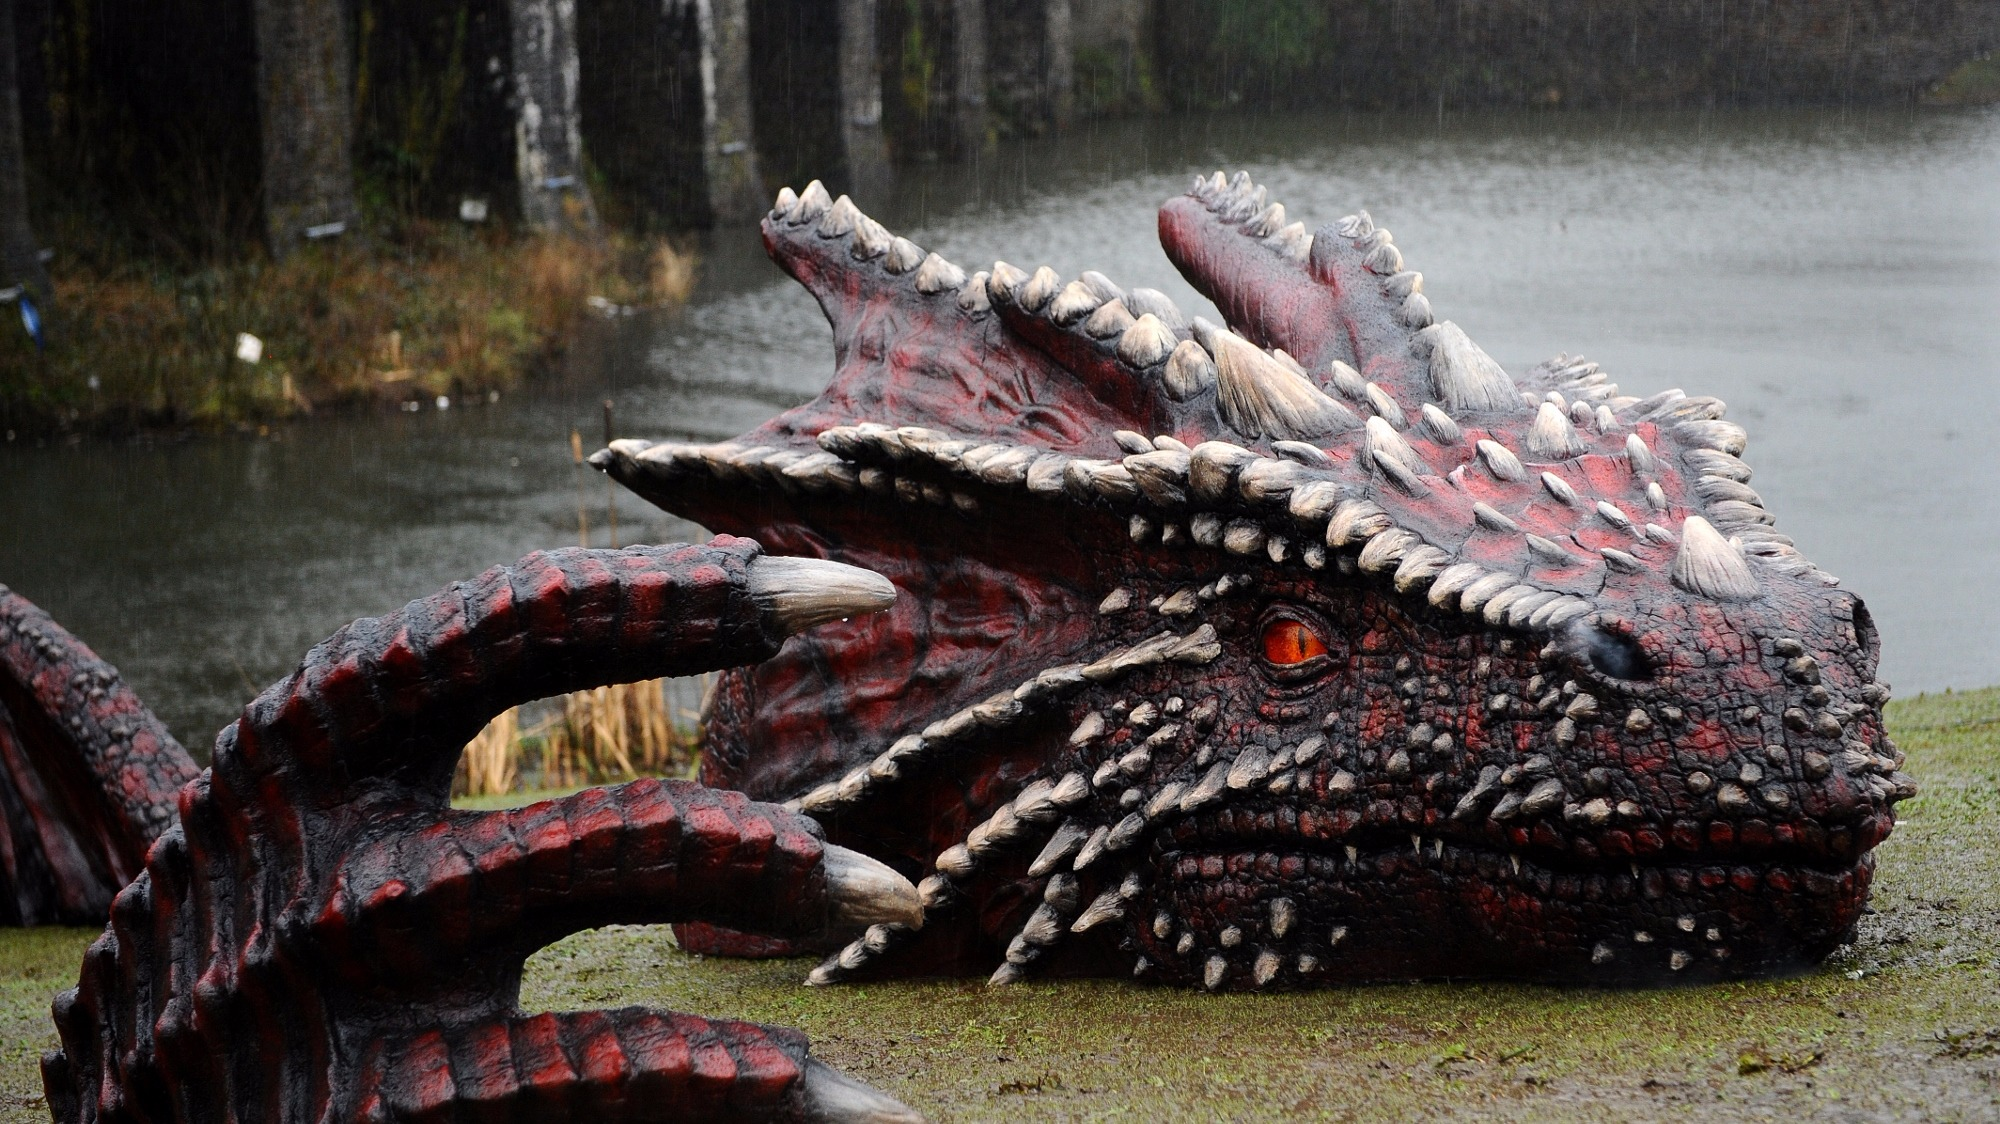 Caerphilly Castle under siege by Welsh dragon | Wales ...